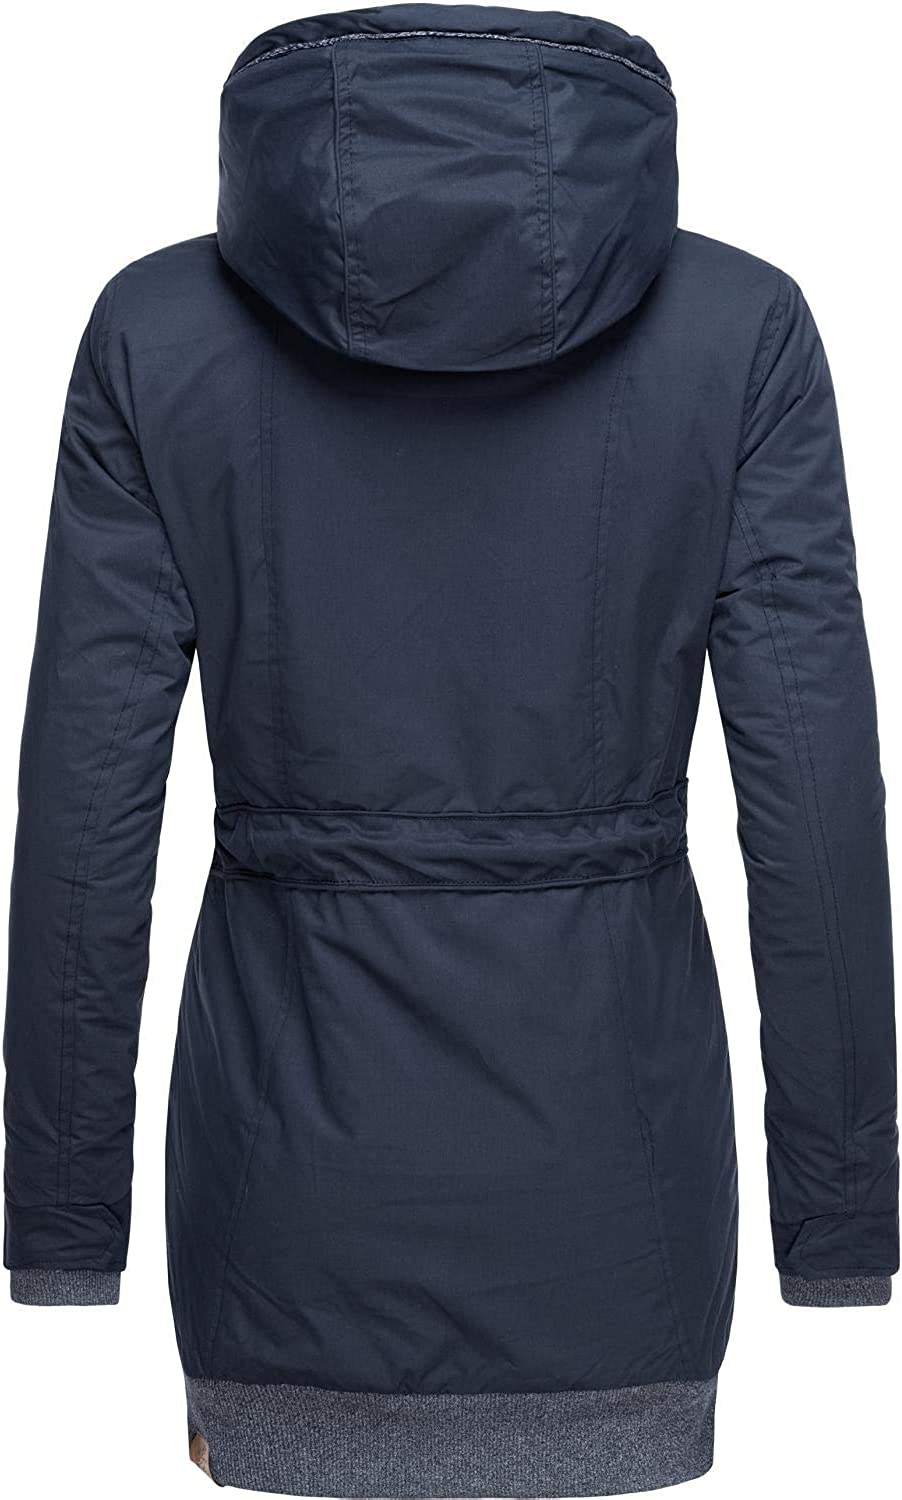 Ragwear Zirrcon Women's Winter Jacket 3 Colours XS-XXL Blue